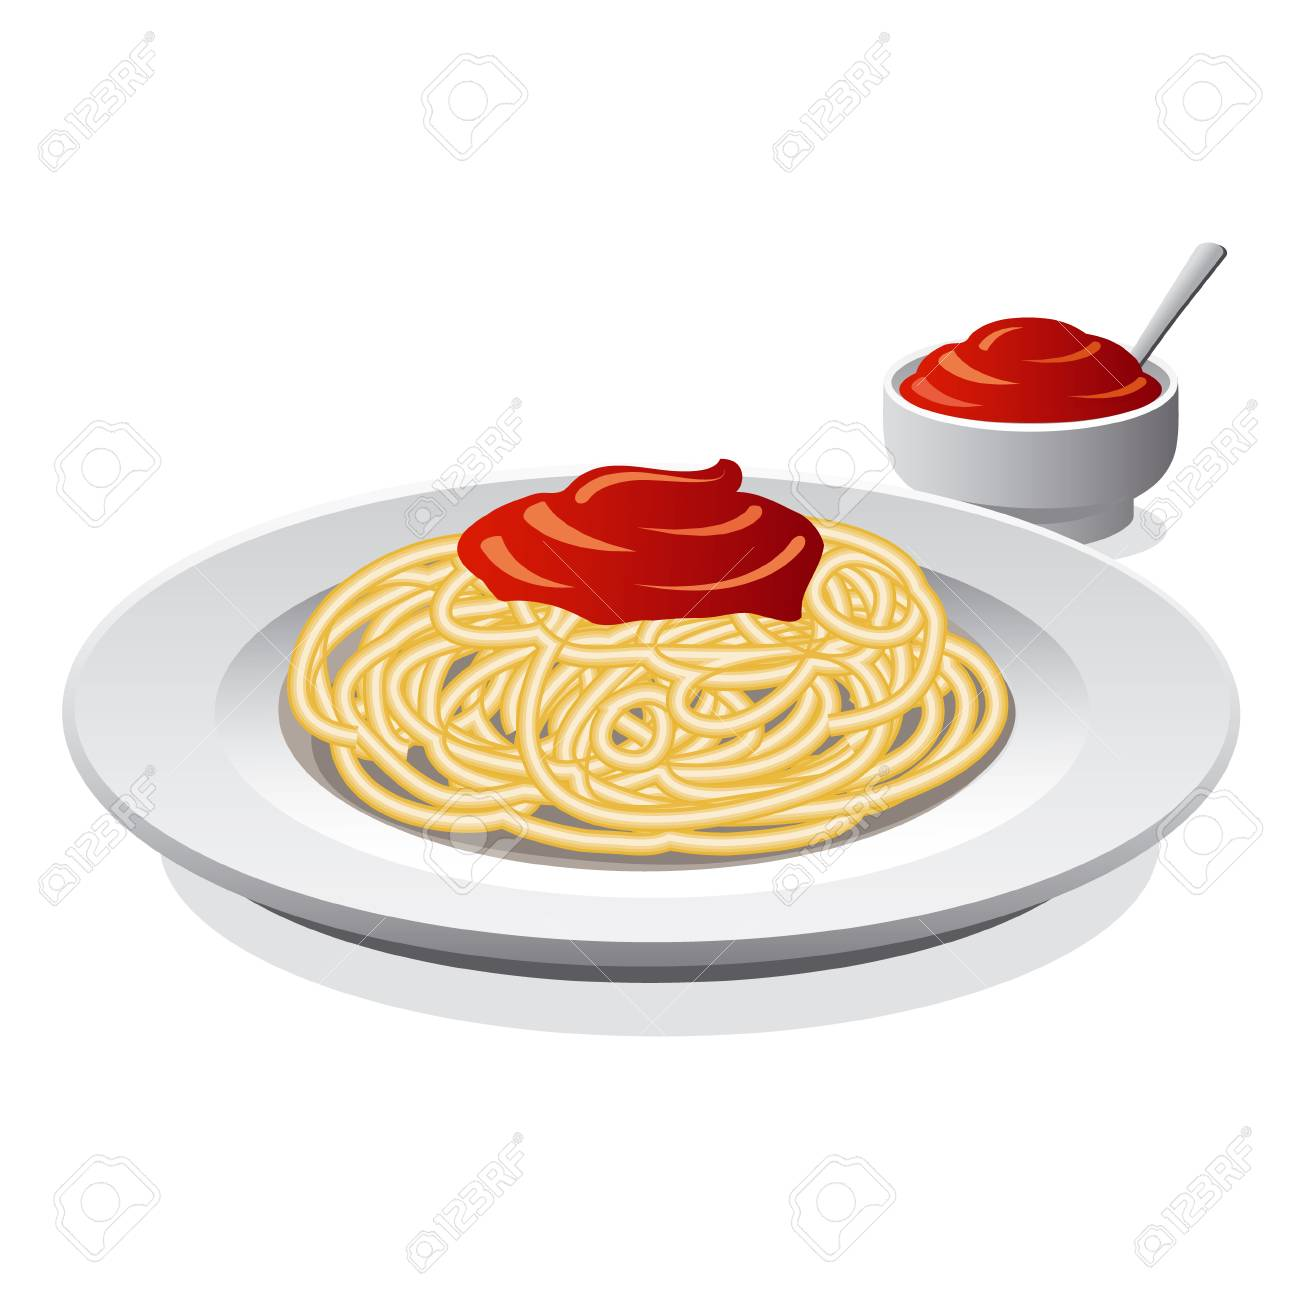 Spaghetti With Sauce Royalty Free Cliparts, Vectors, And Stock ...